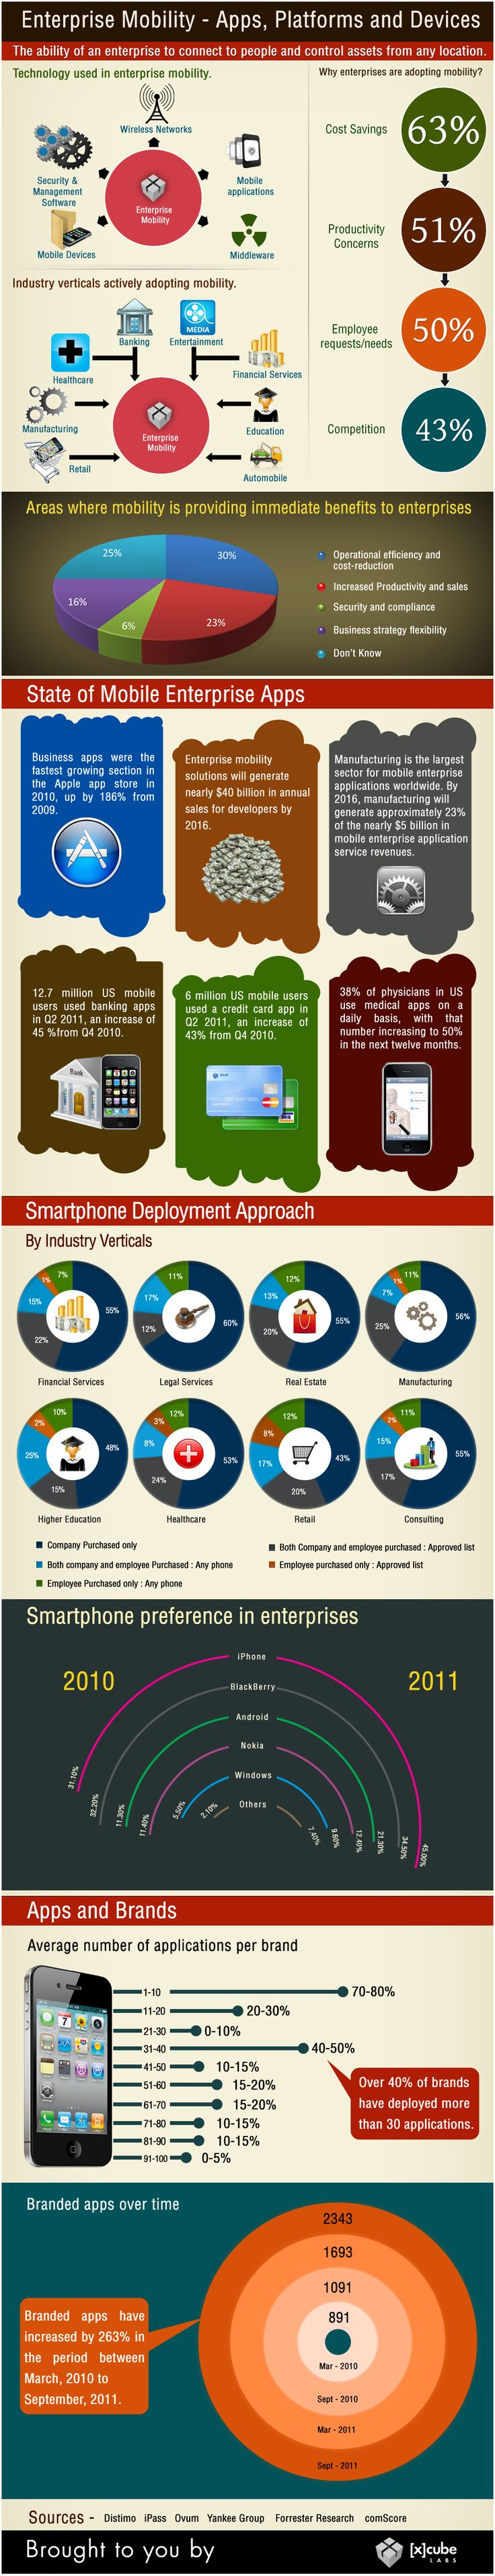 Enterprise Mobility - Apps, Platforms and Devices - #INFOGRAPHIC #mobile #apps